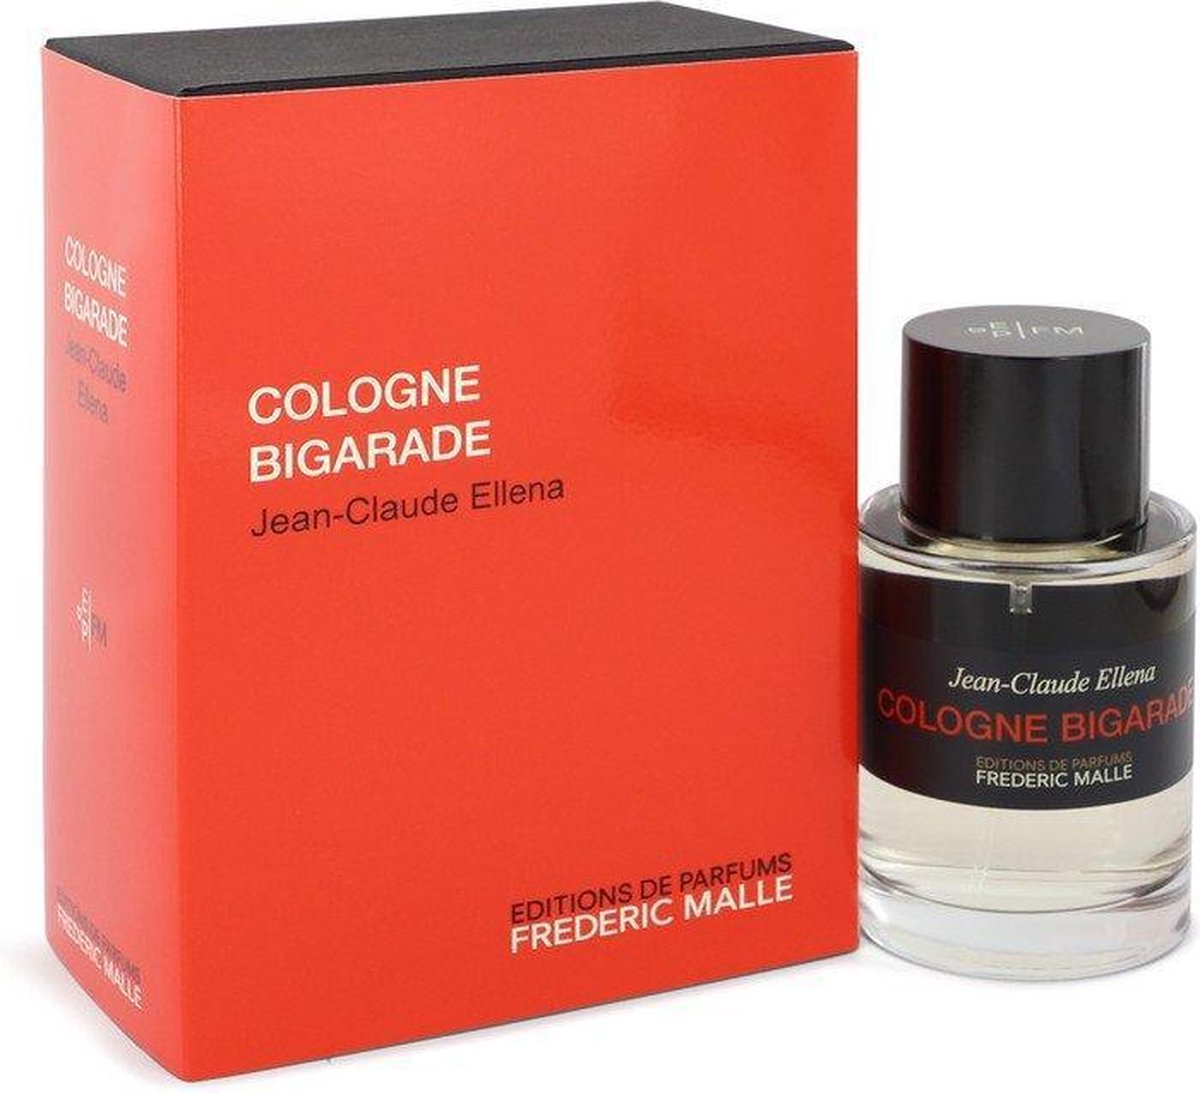 Eau De Cologne Spray 3.4 oz